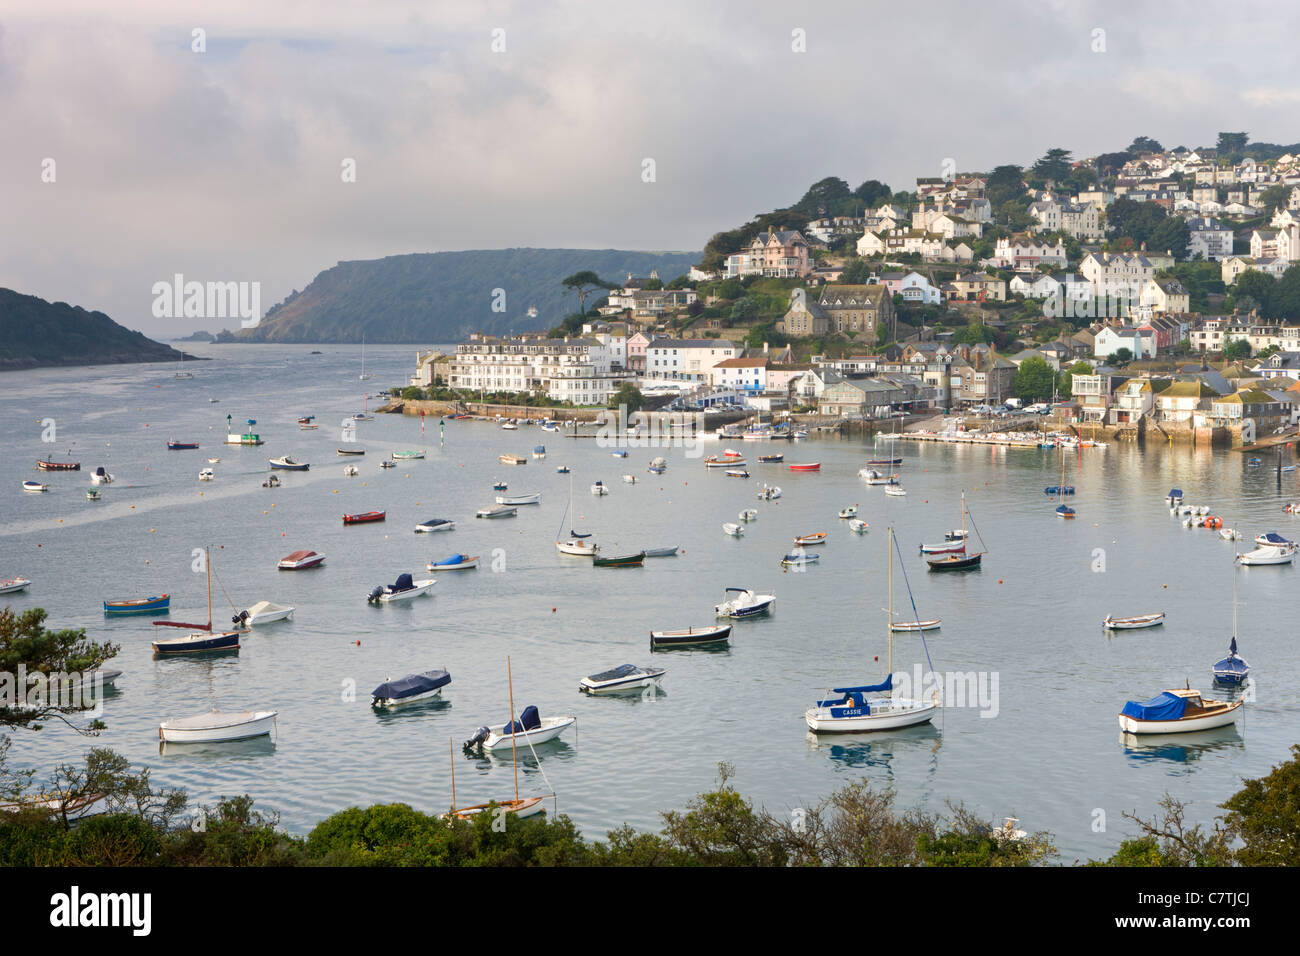 Salcombe and the Kingsbridge Estuary from Snapes Point, South Hams, Devon, England. Autumn (September) 2010. - Stock Image